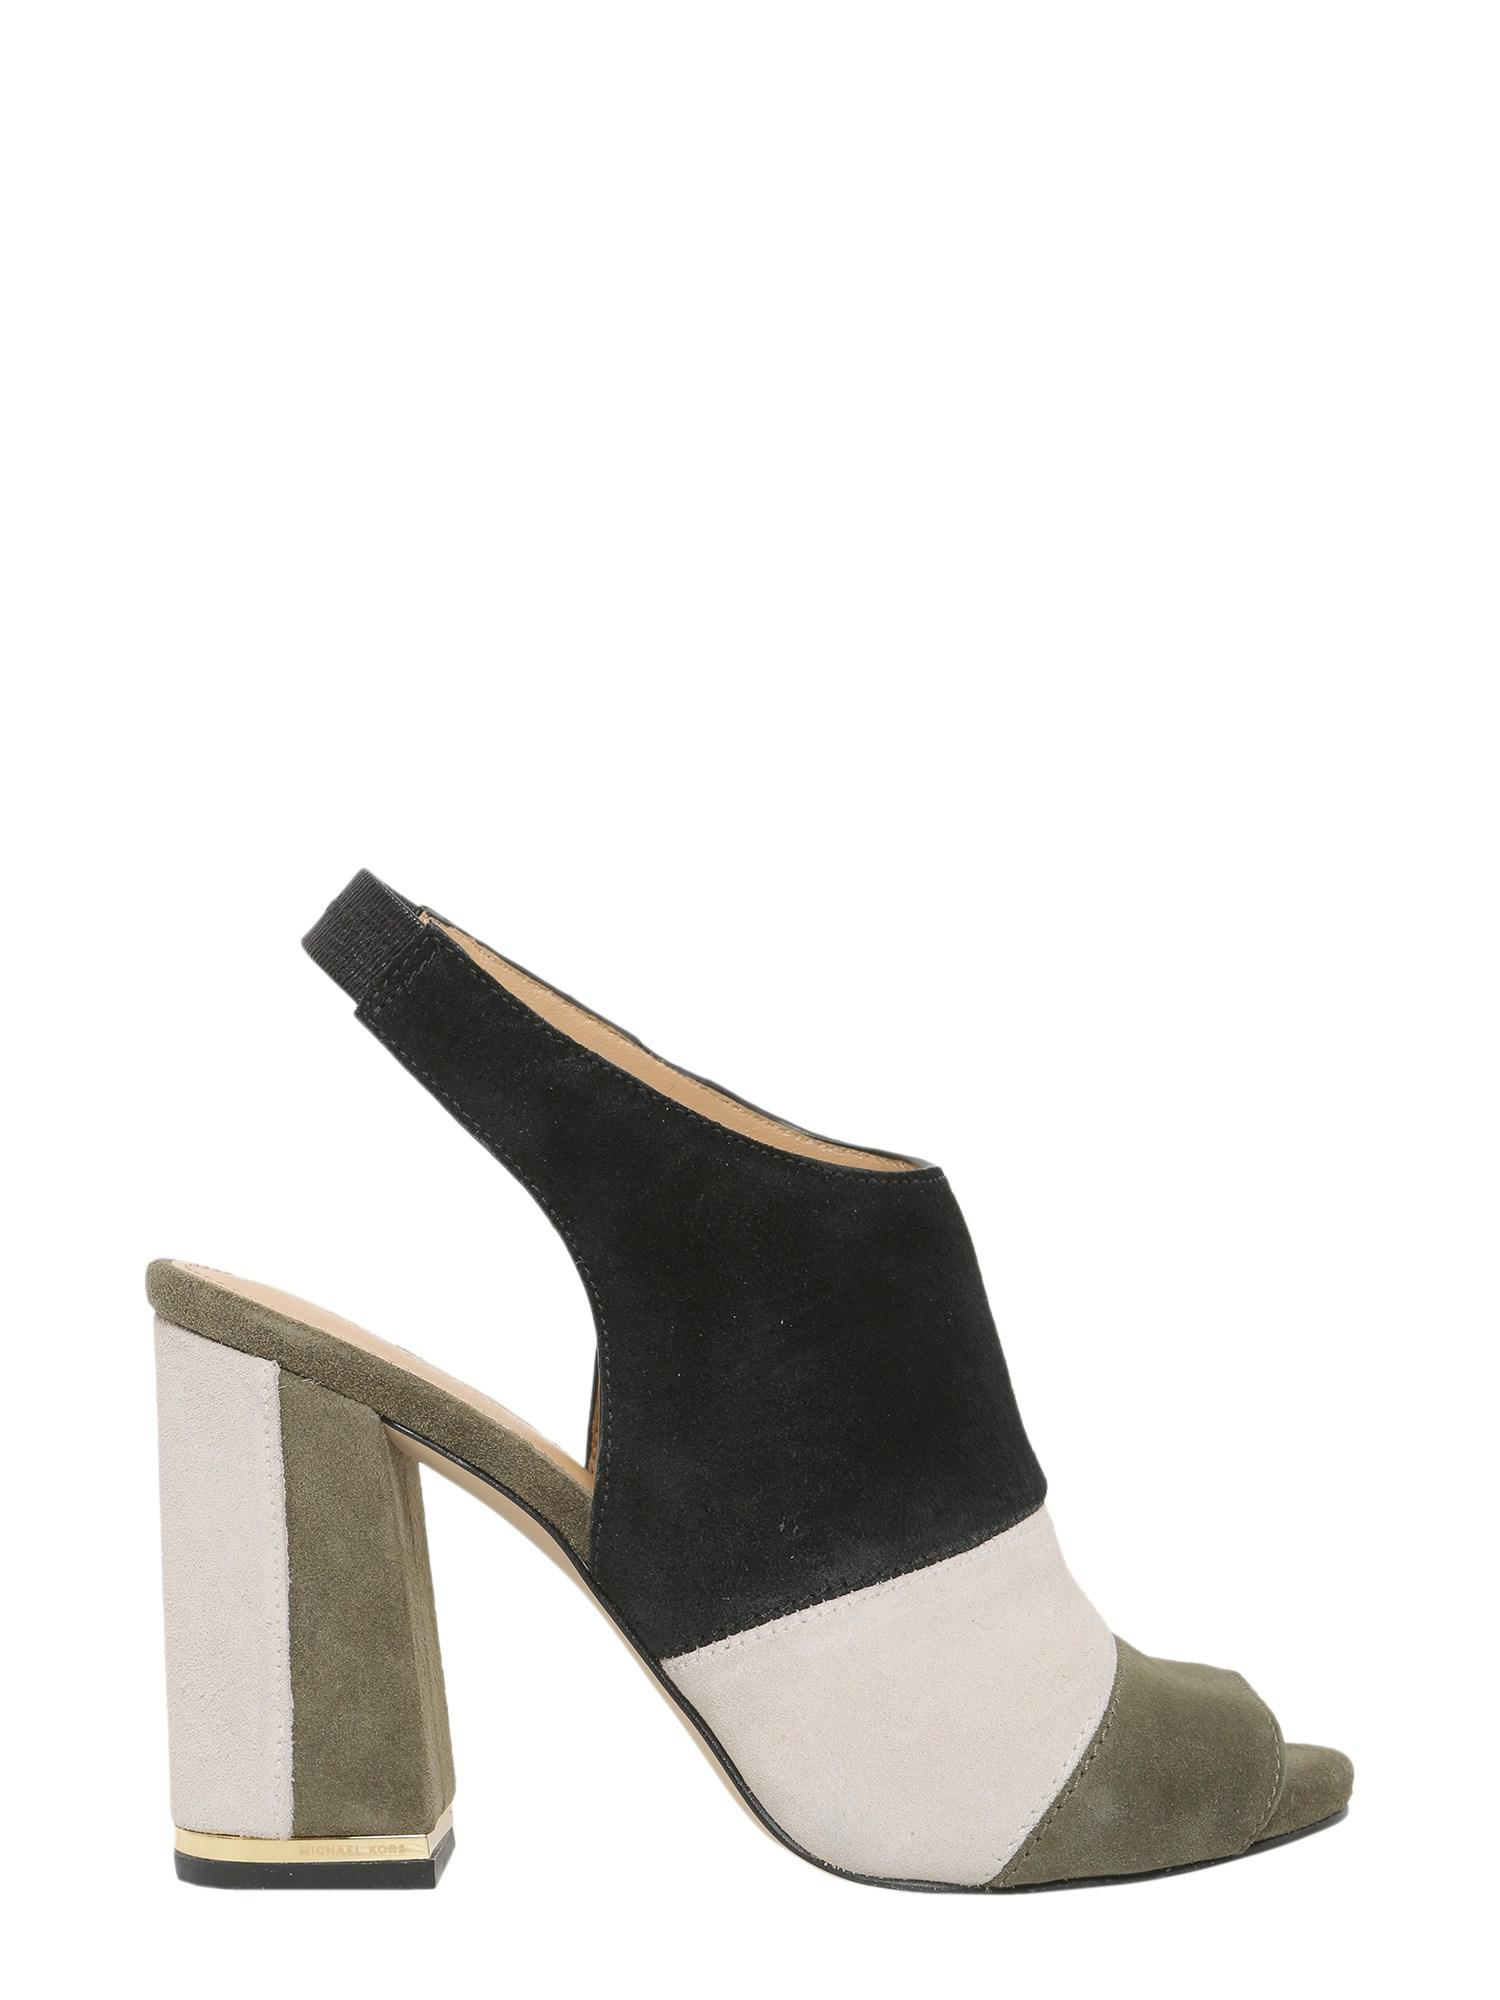 ba4a64f17bc Michael Michael Kors Open Toe Anise In Suede in Green - Lyst